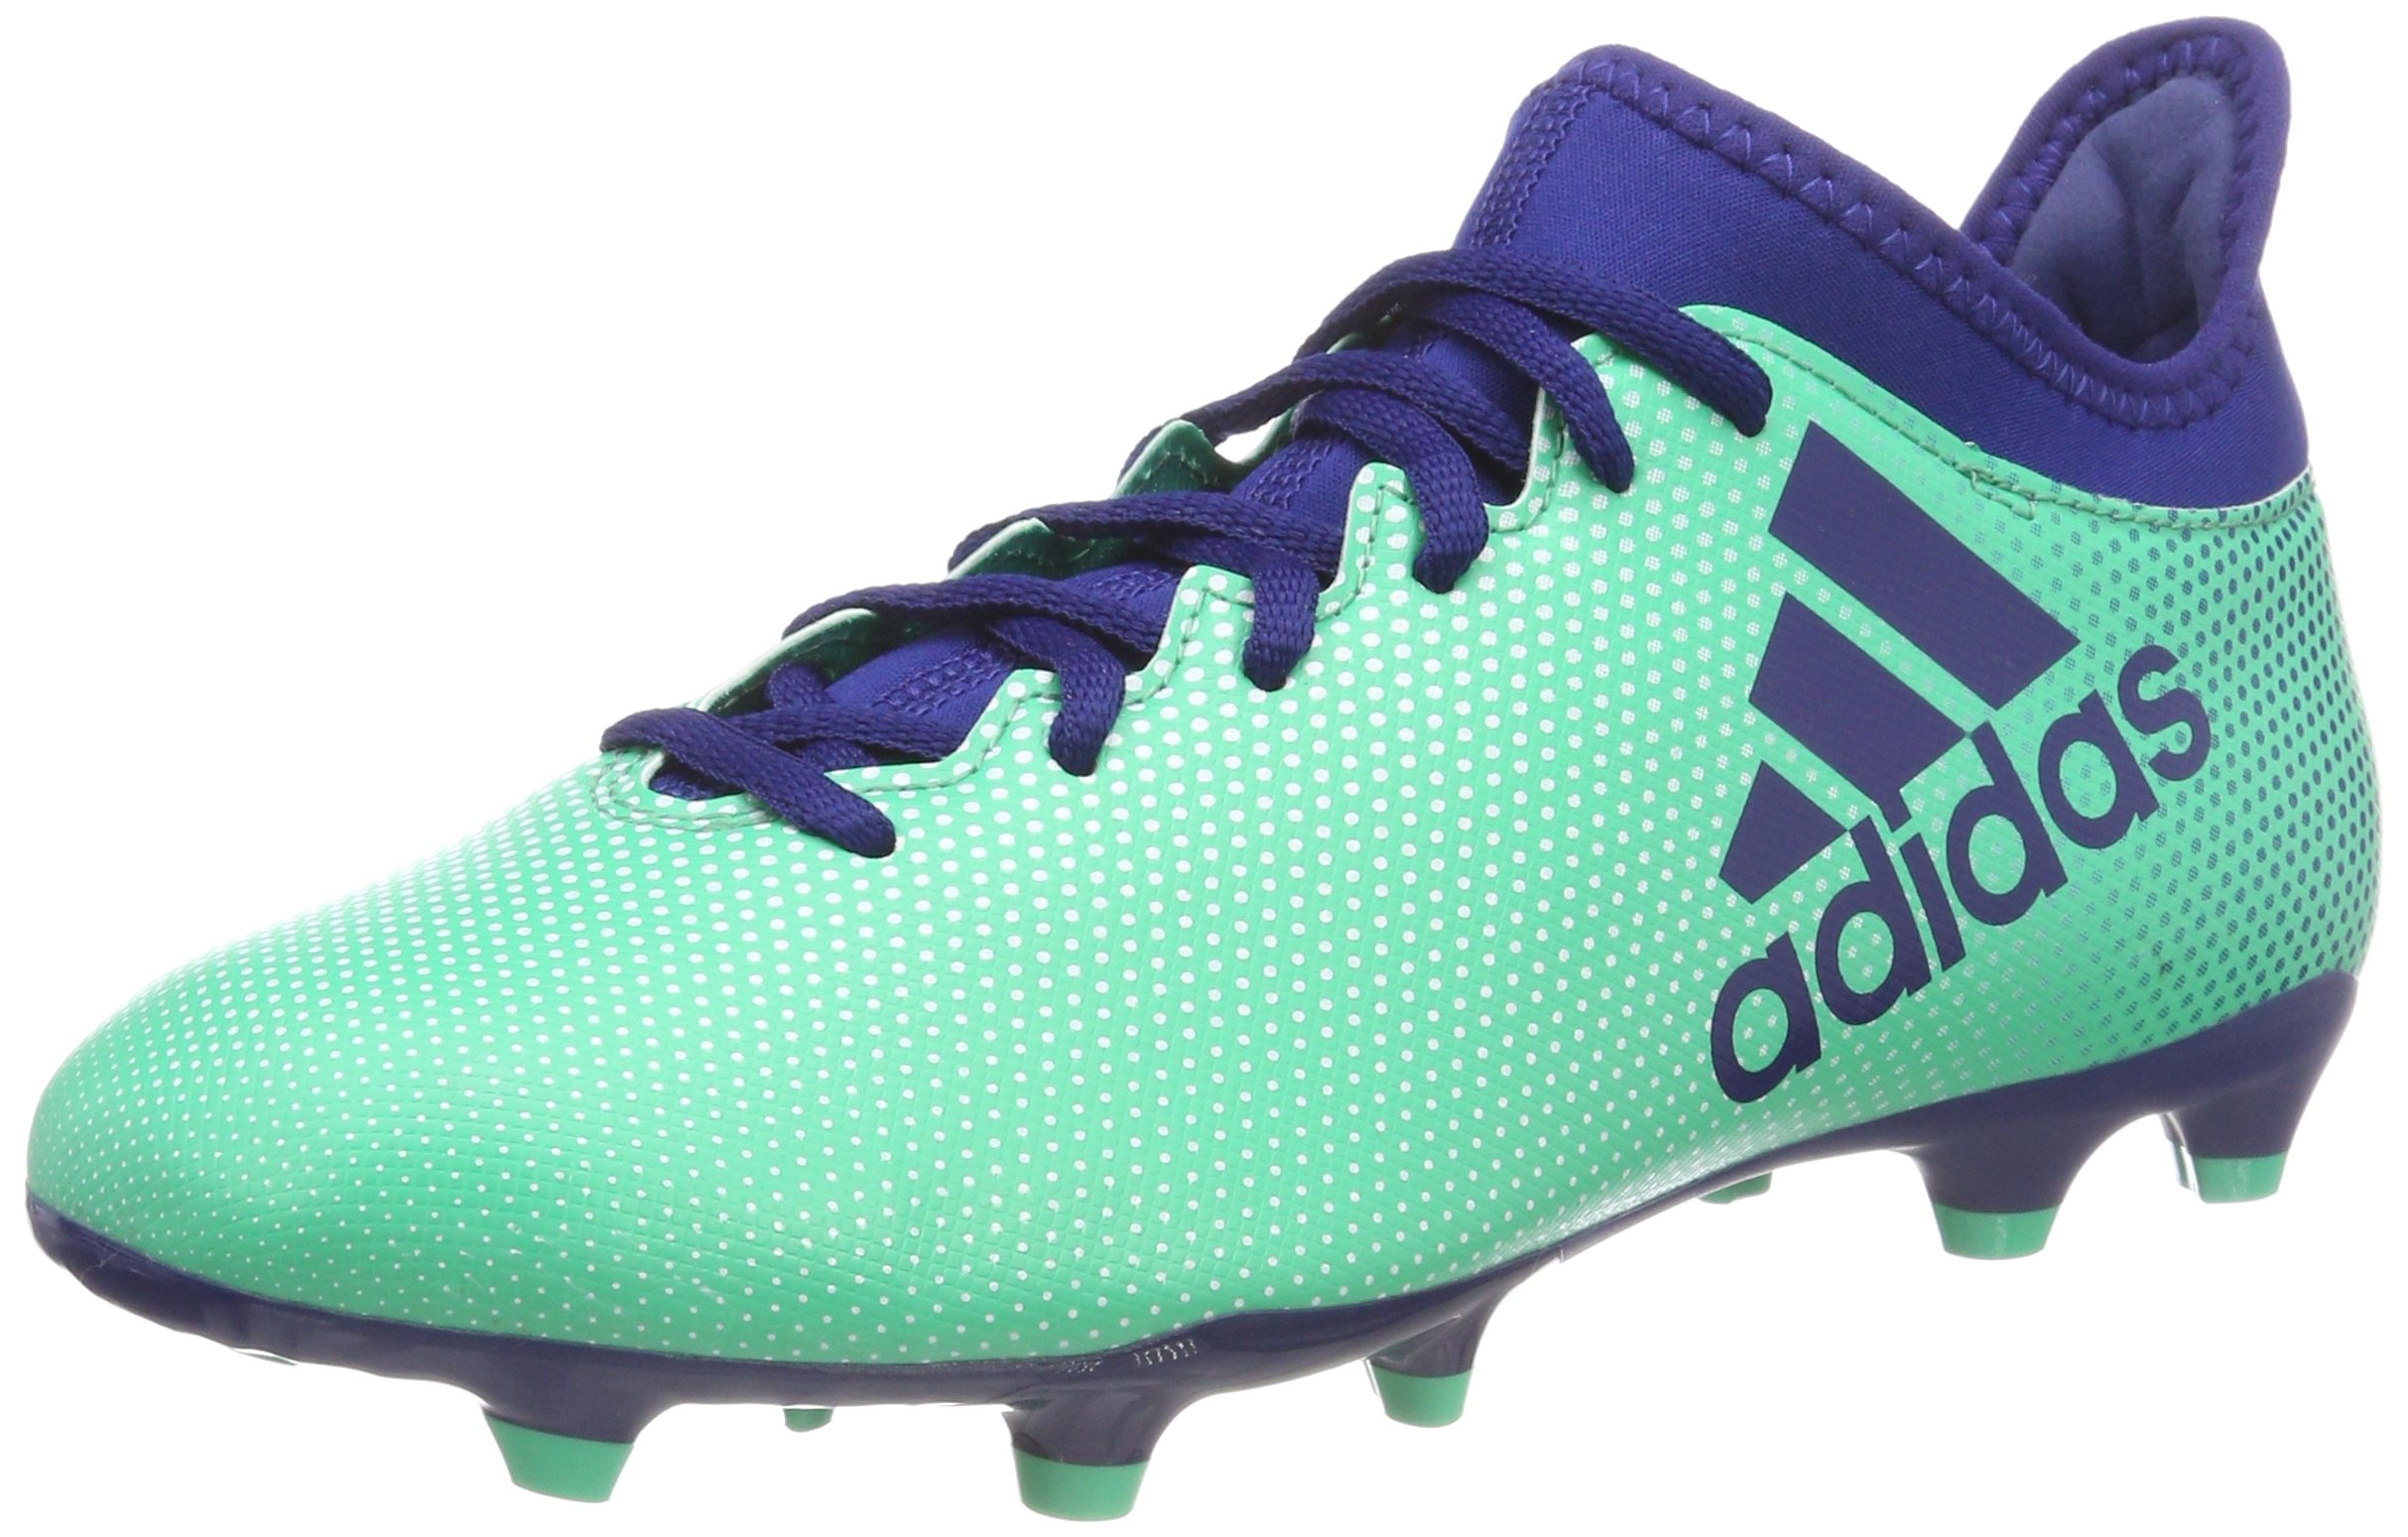 43650a2c2f58 adidas Men s X 17.3 Fg Footbal Shoes – Just Sports UK